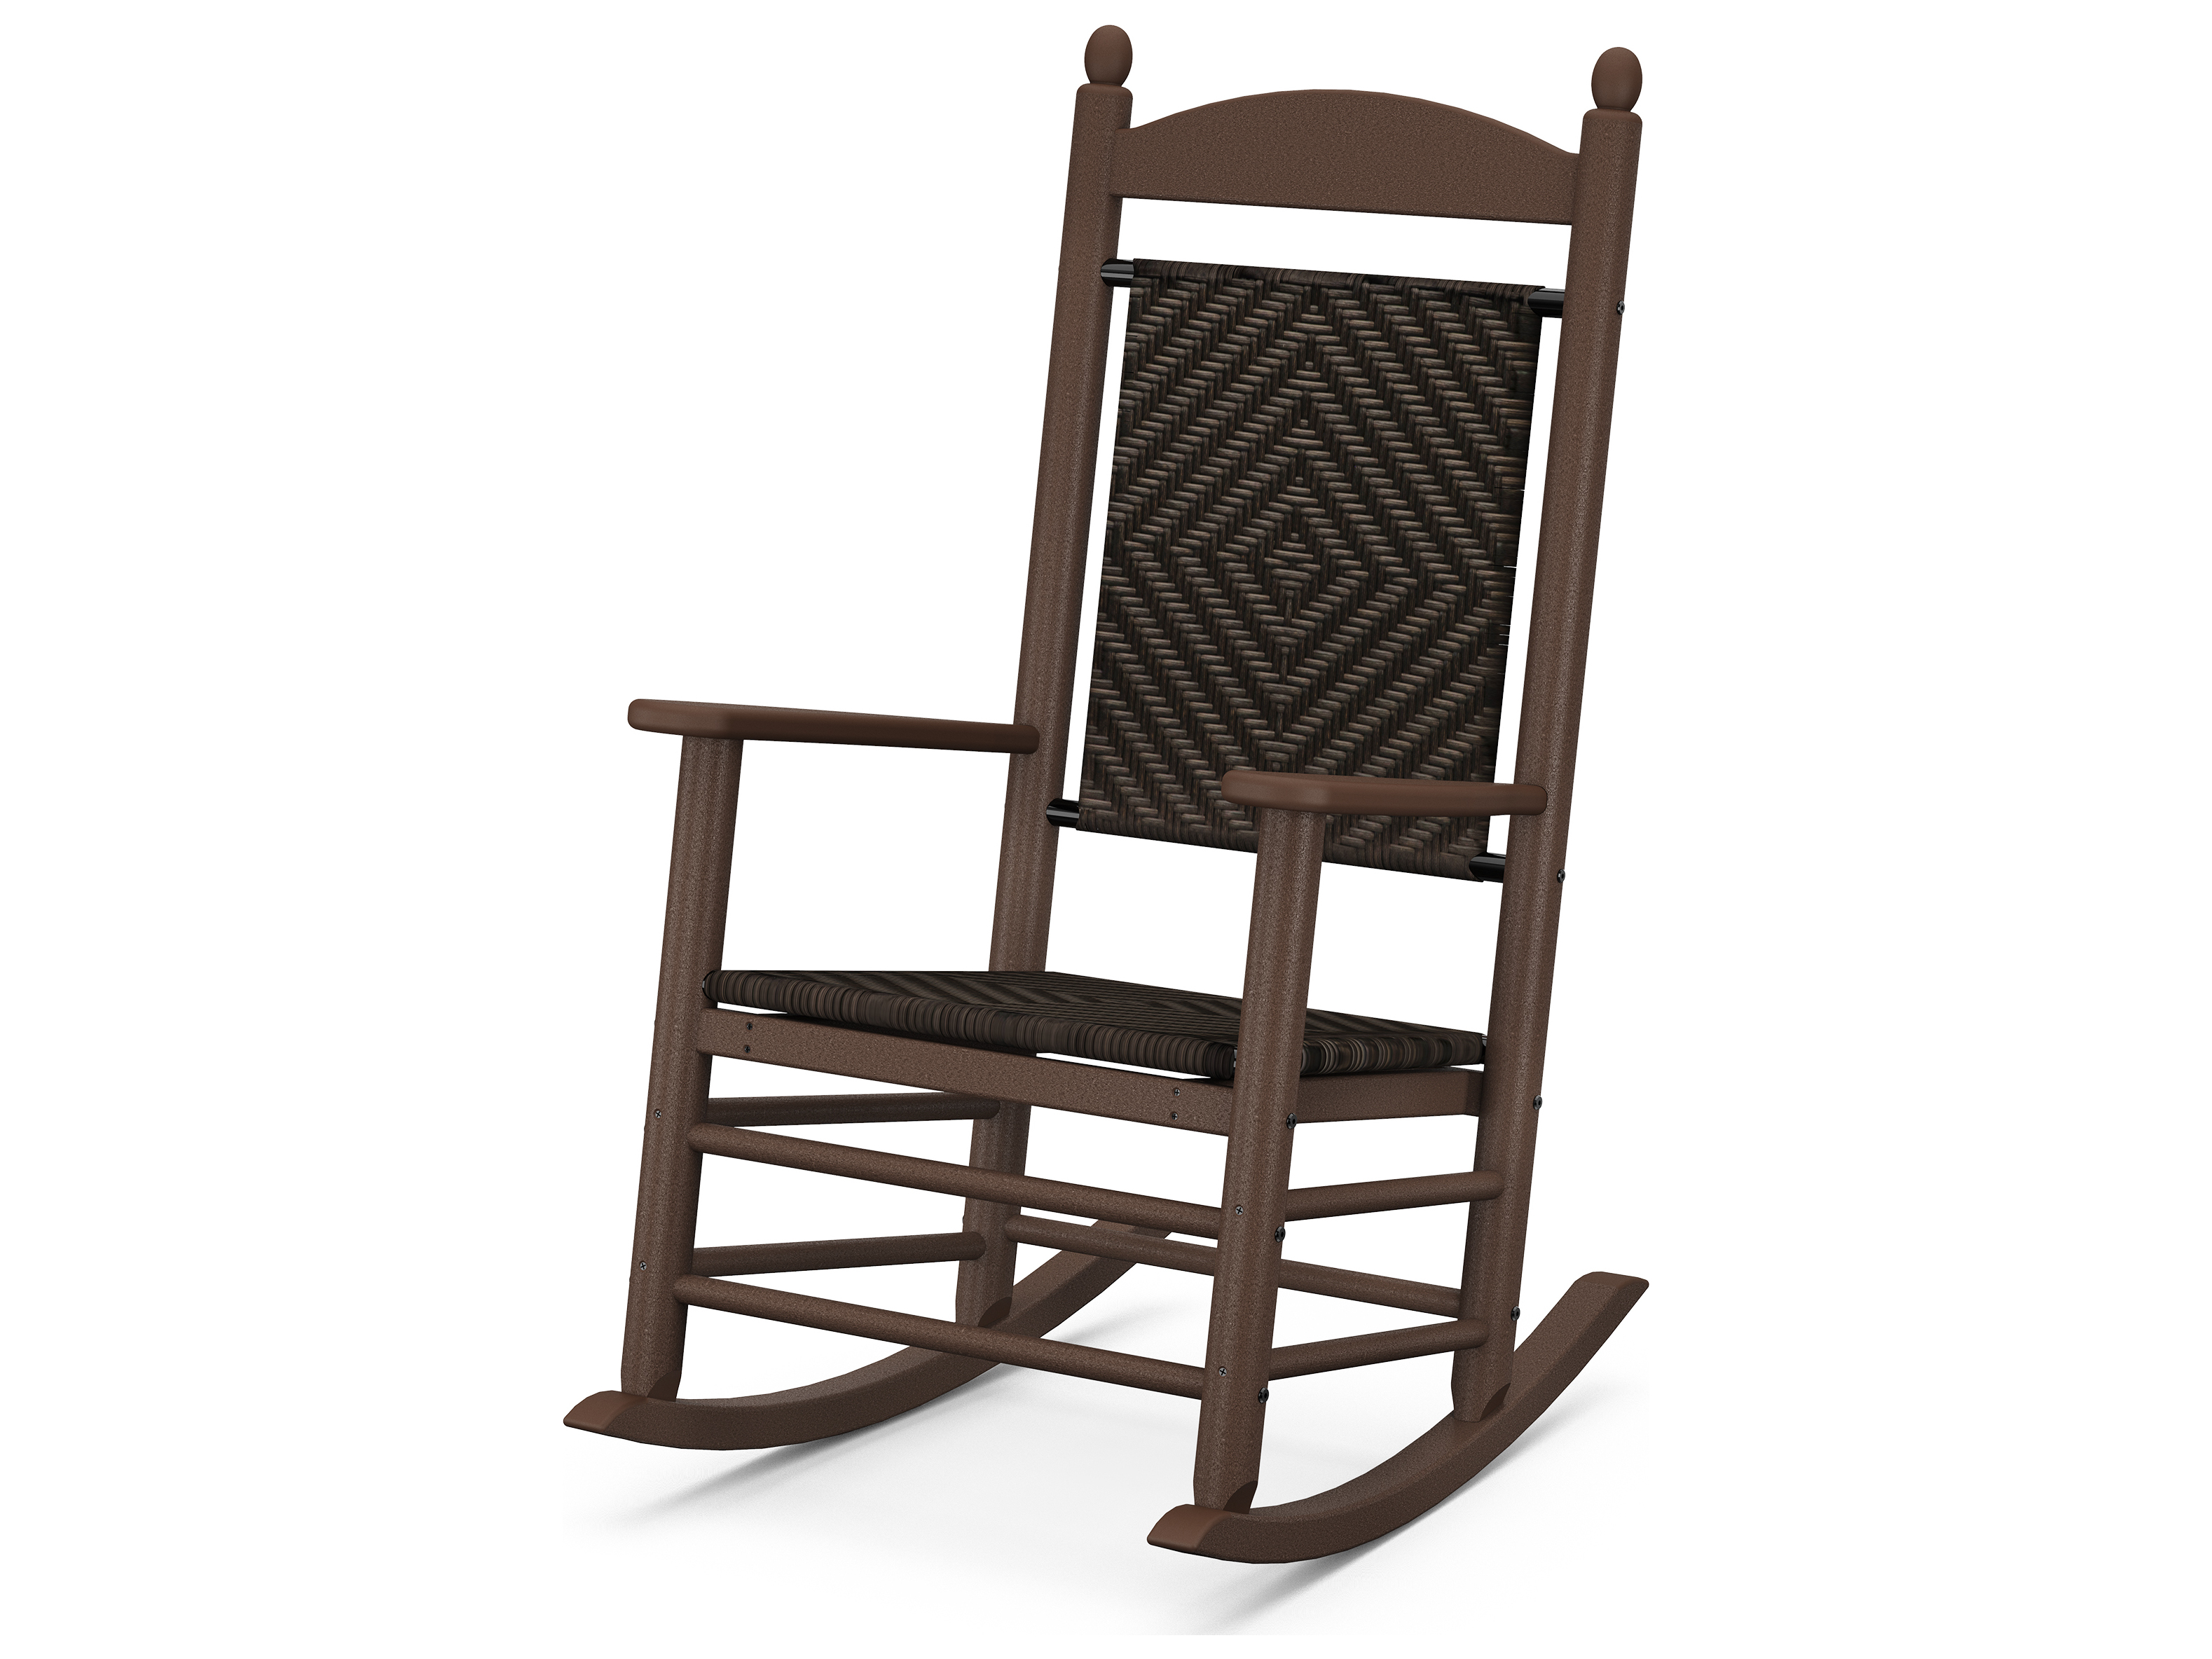 POLYWOOD Jefferson Recycled Plastic Rocker Lounge Chair